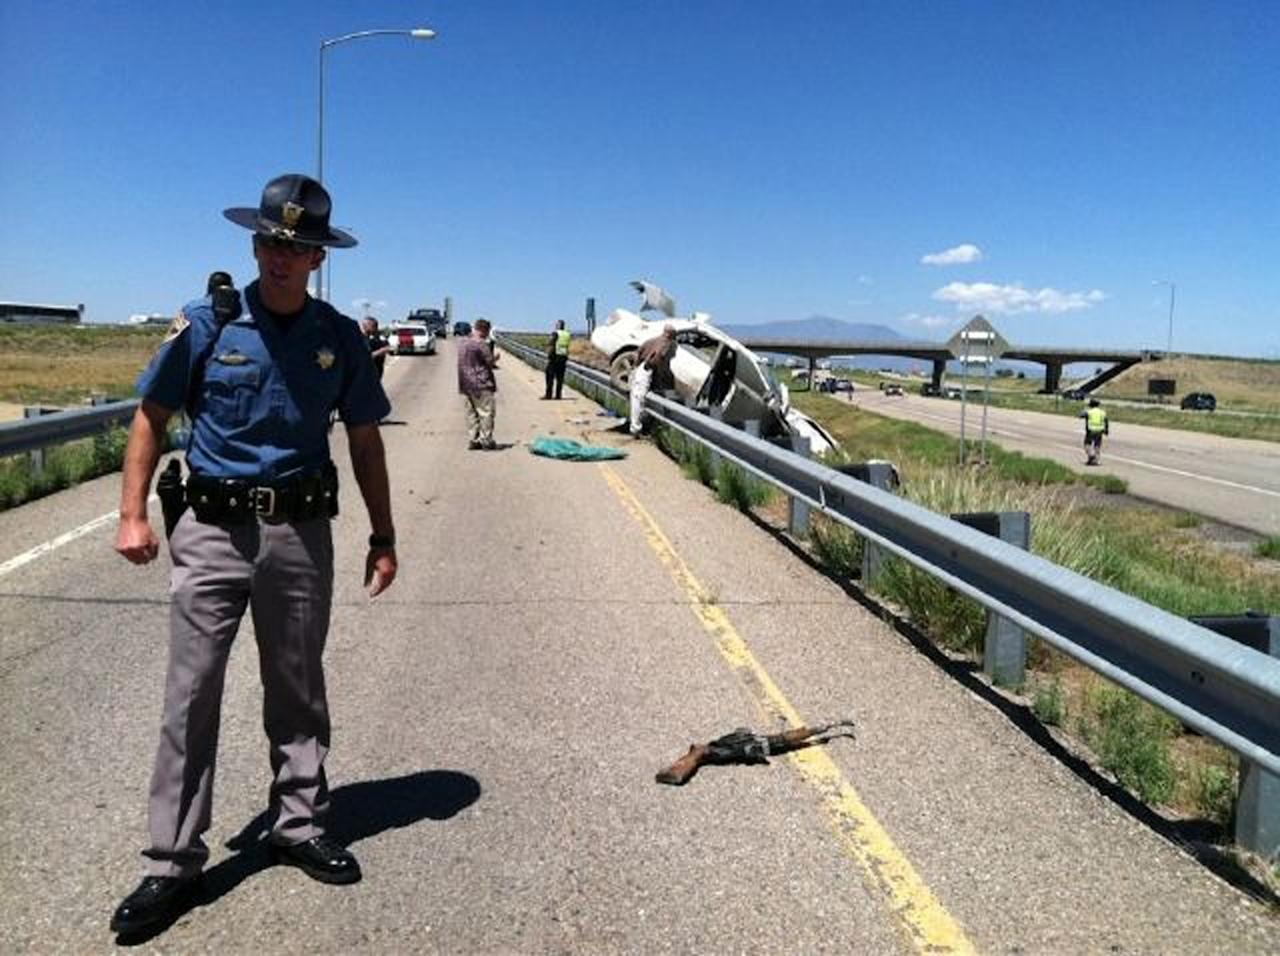 In this photo provided by the Colorado State Patrol, authorities investigate the scene where three fugitive siblings wanted in a crime spree in Florida and Georgia were captured Wednesday, Aug. 10, 2011, along Interstate 25 in Walsenburg, Colo., after firing shots at officers during a high-speed chase and crashing their car into a highway barrier, authorities said. (AP Photo/Colorado State Patrol)